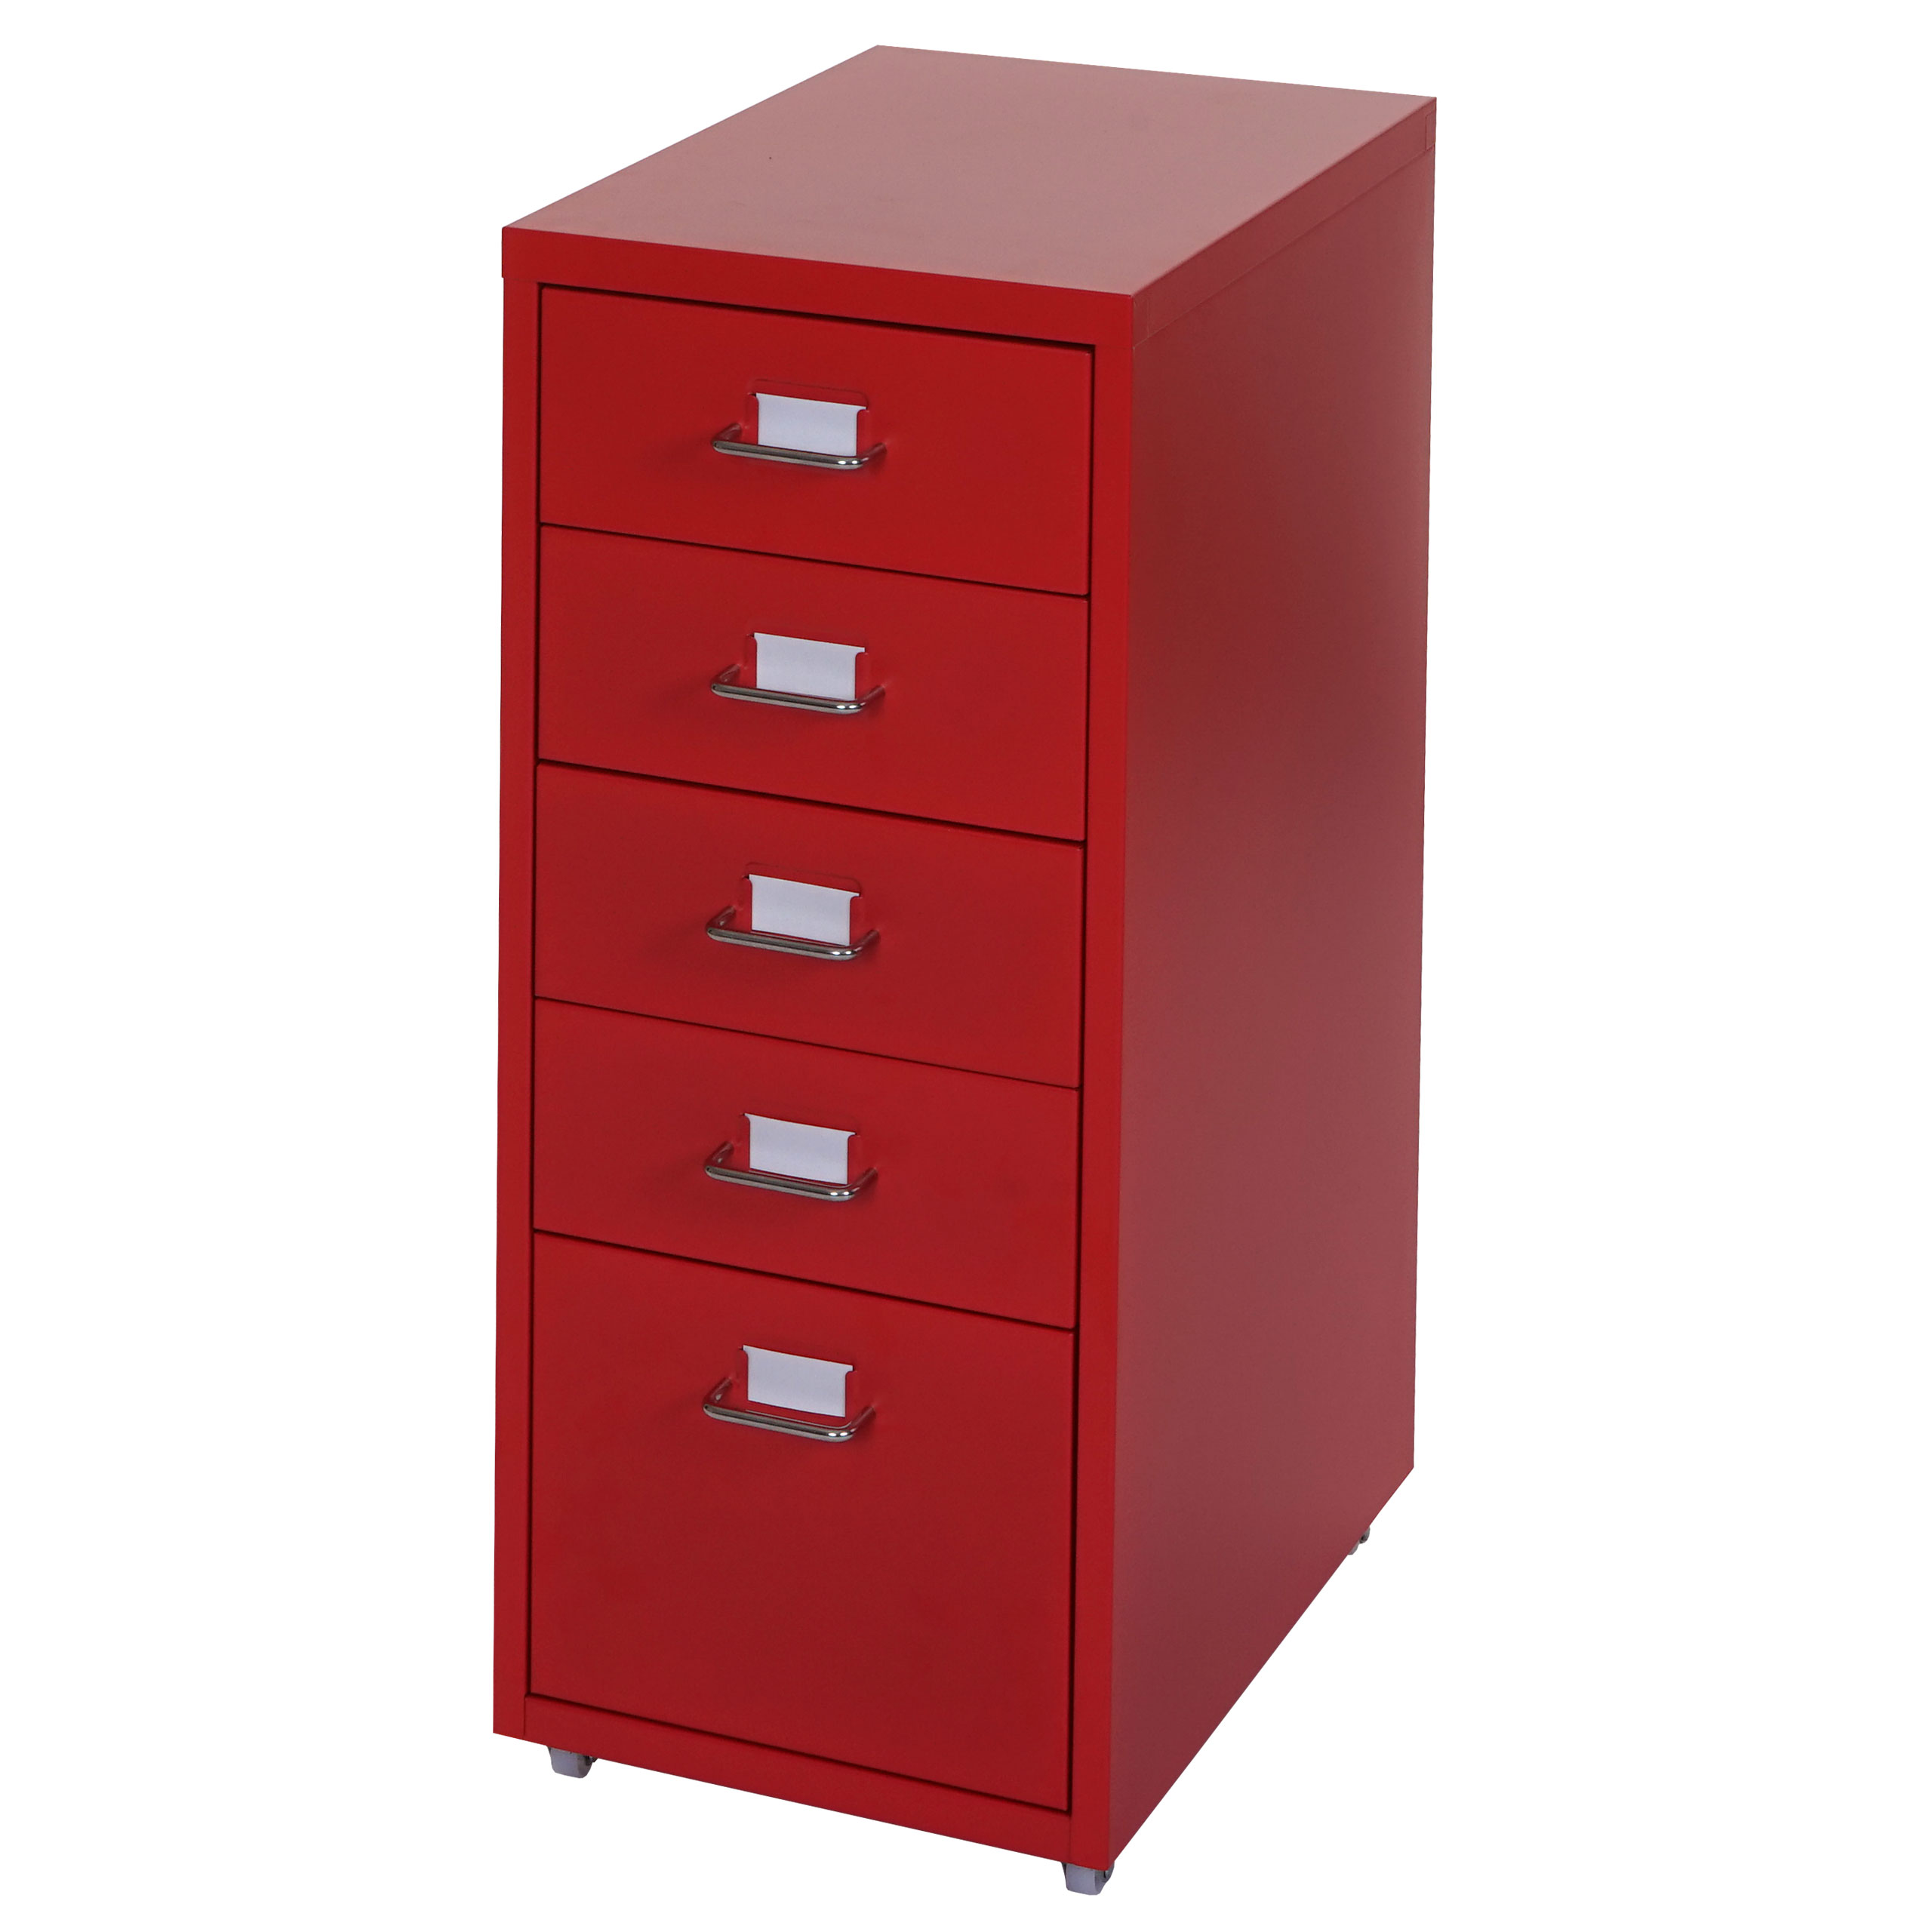 rollcontainer boston t851 schubladenschrank stahlschrank 69x28x44cm 5 schubladen rot. Black Bedroom Furniture Sets. Home Design Ideas